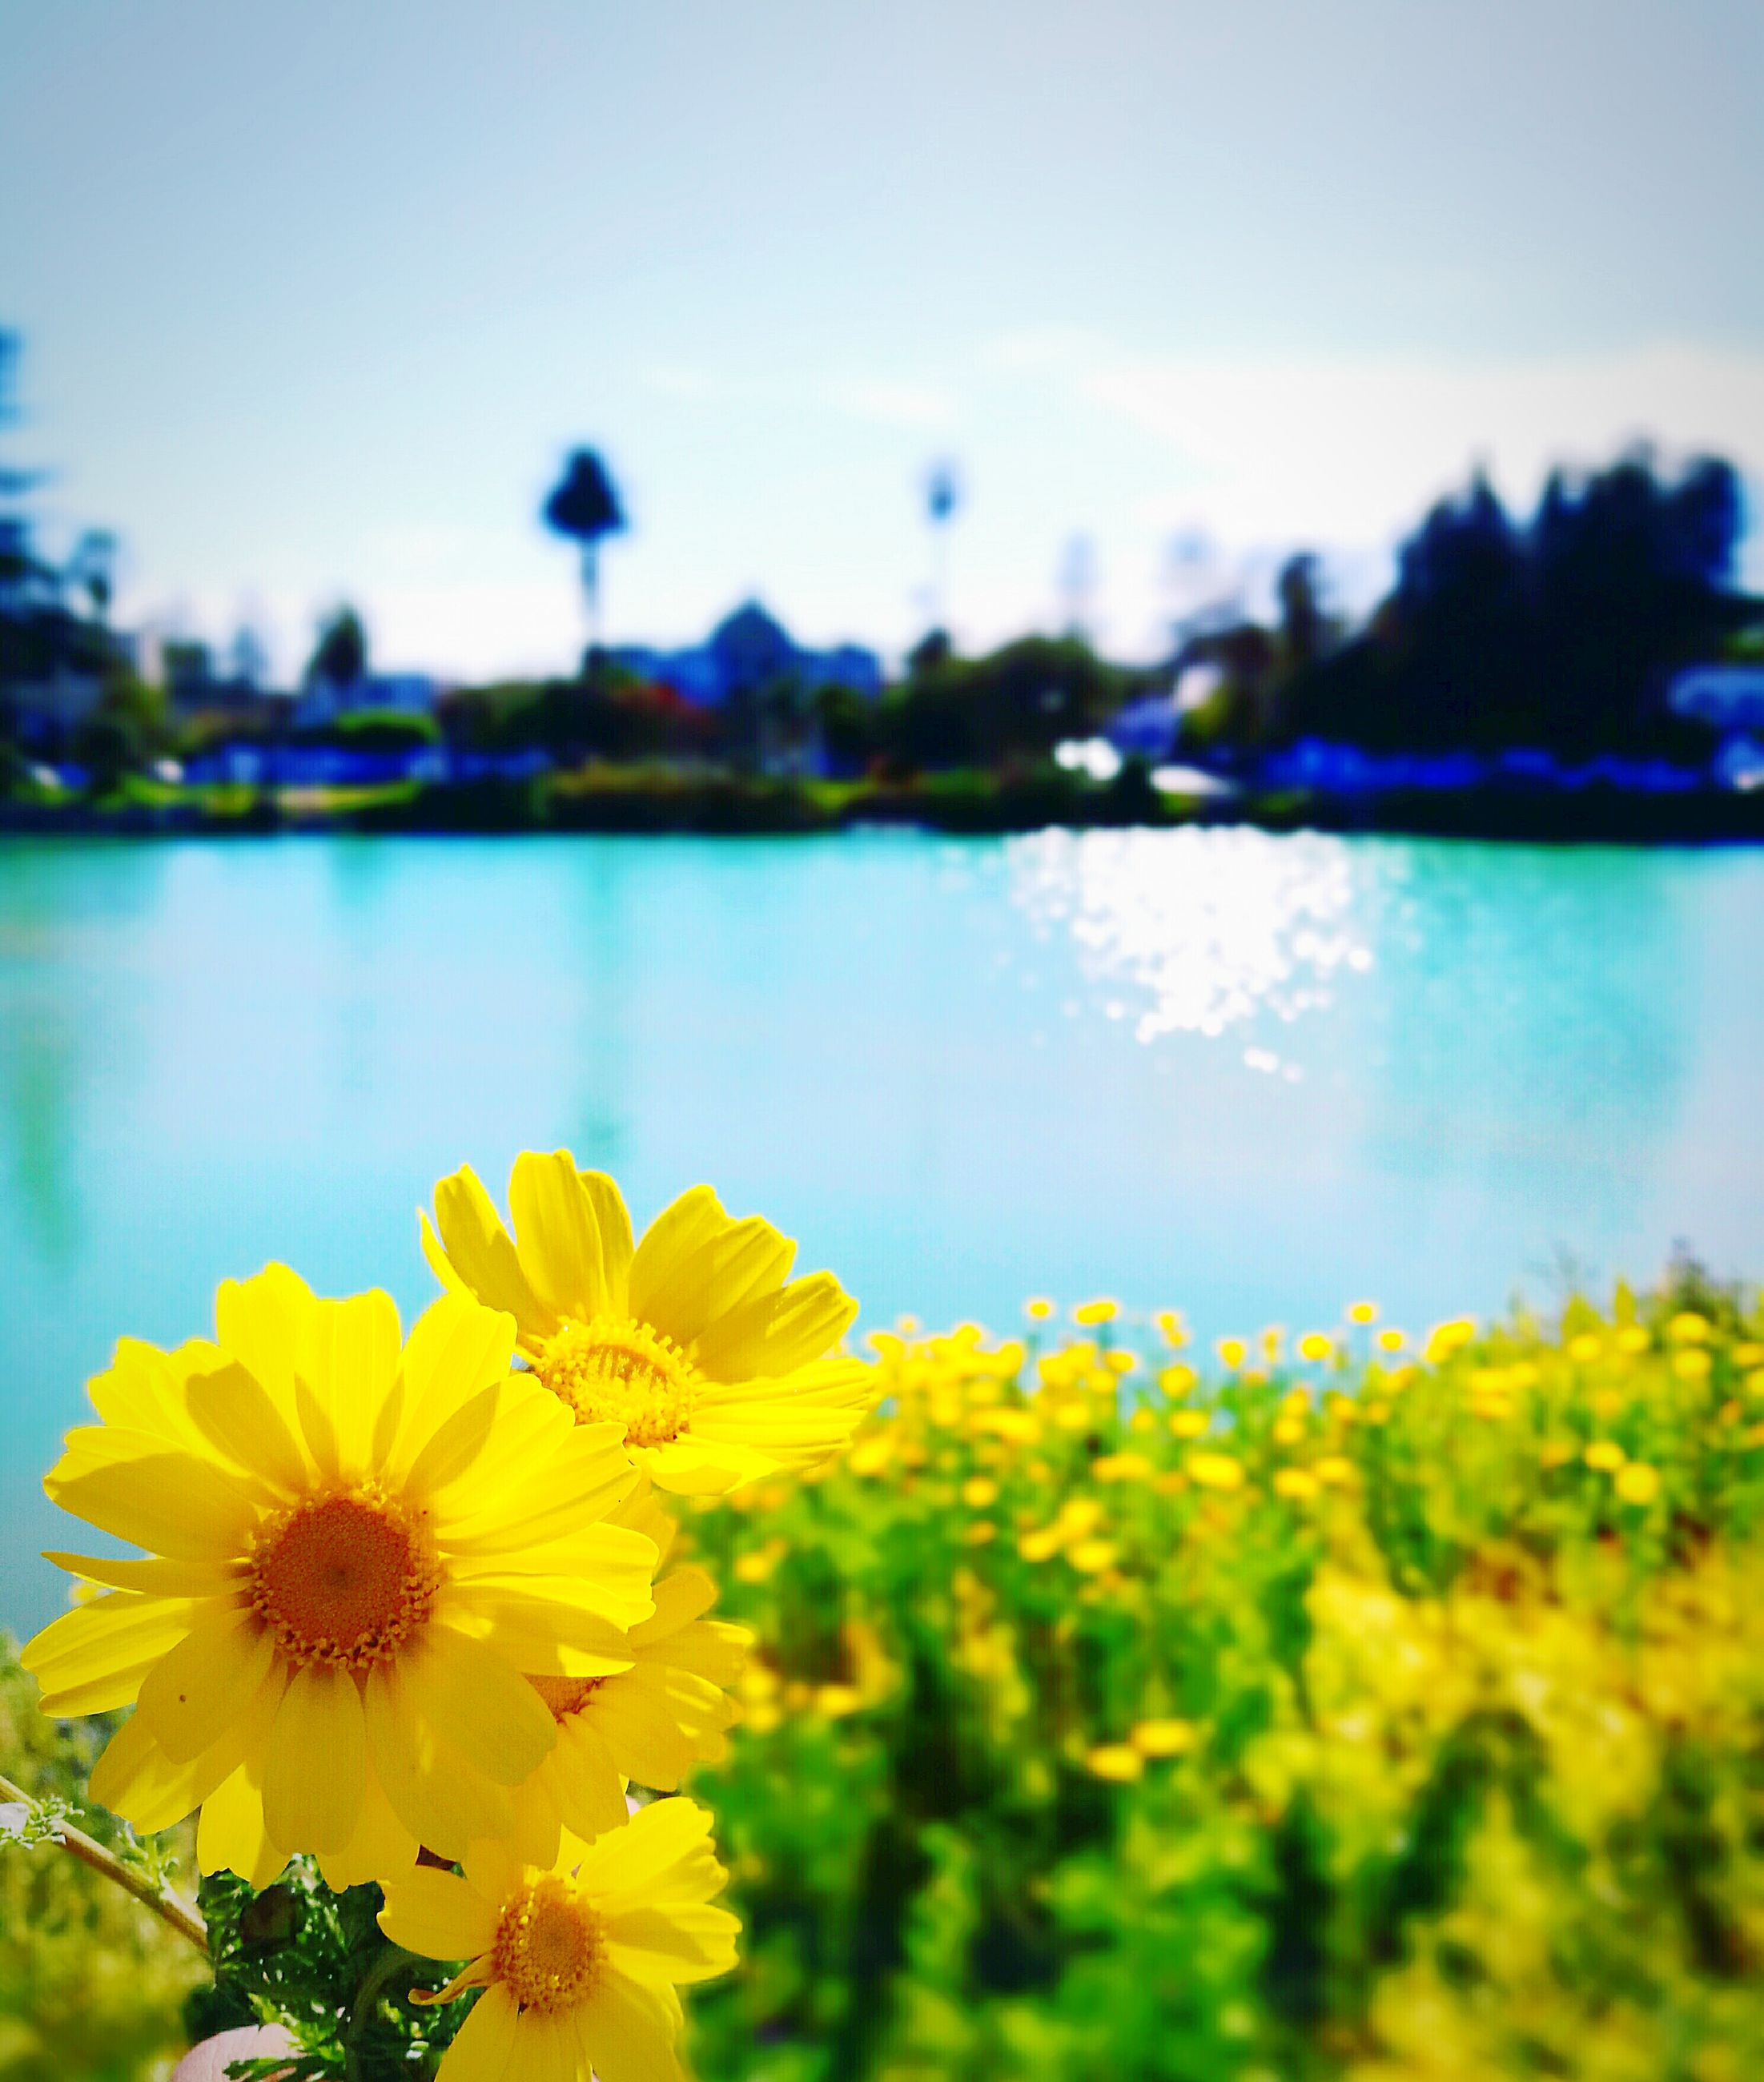 flower, beauty in nature, nature, fragility, freshness, yellow, petal, growth, focus on foreground, outdoors, sky, water, no people, flower head, plant, clear sky, day, blooming, building exterior, tree, close-up, architecture, city